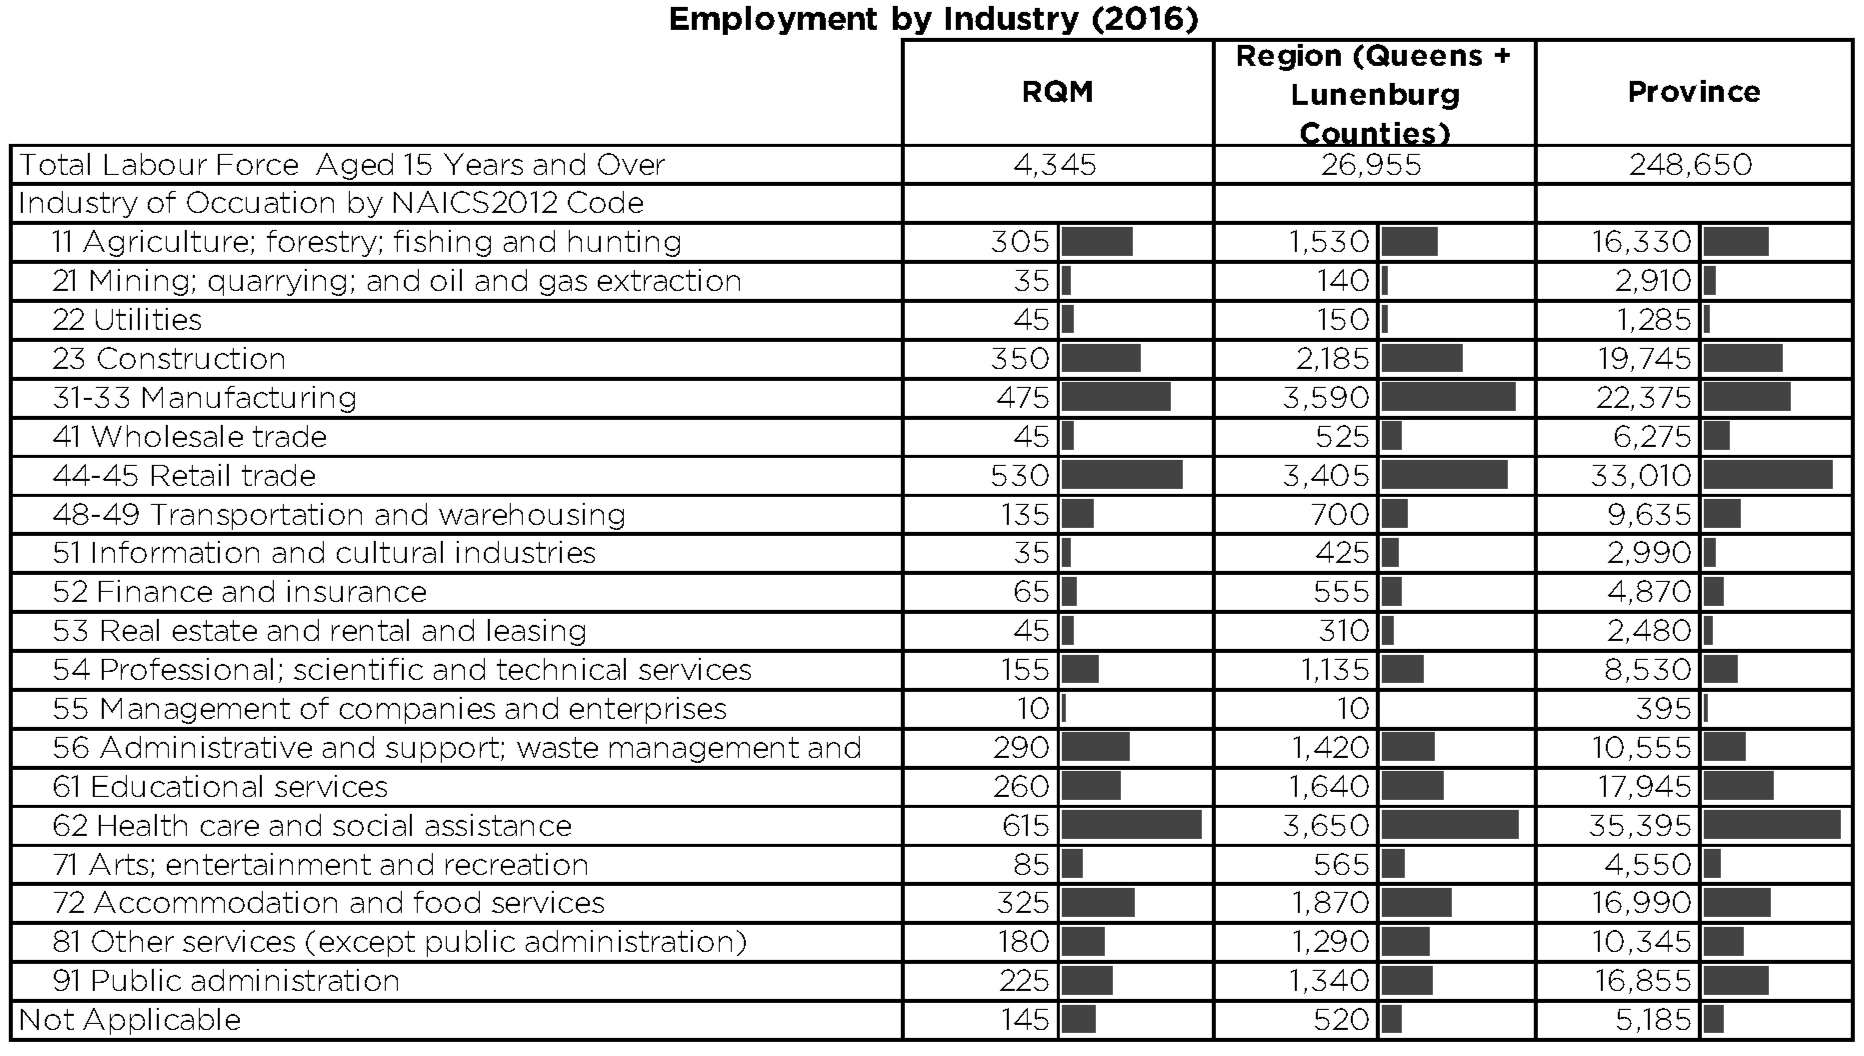 Employment by Industry 2016